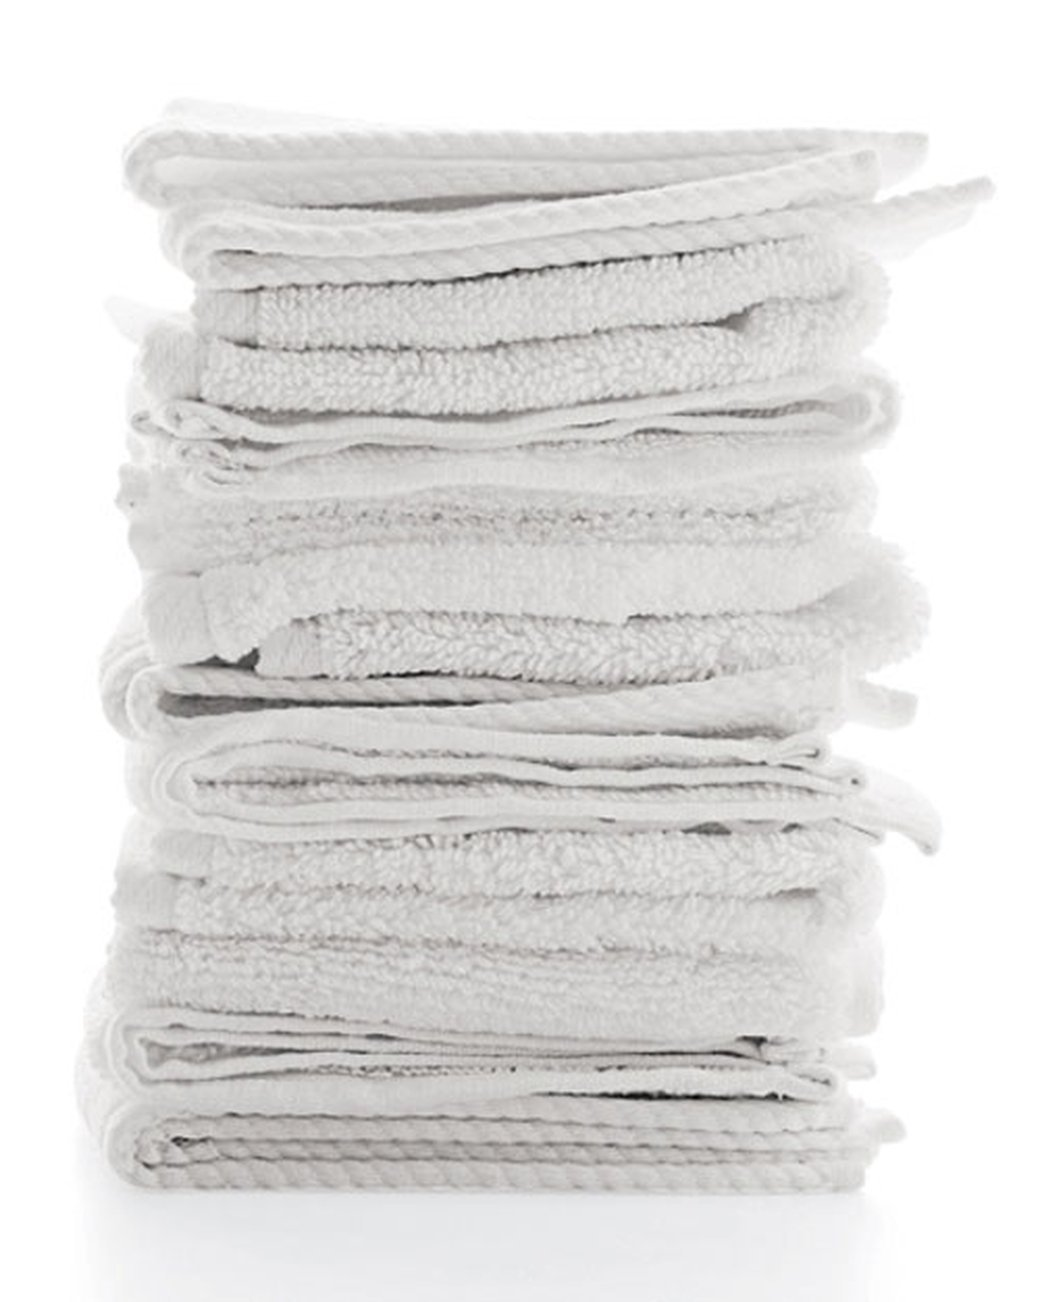 Bar Mop Cleaning Kitchen Dish Cloth Towels,100% Cotton, Machine Washable, Everyday Kitchen Basic Utility Bar Mop Dishcloth Set of 12, White by Living Fashions